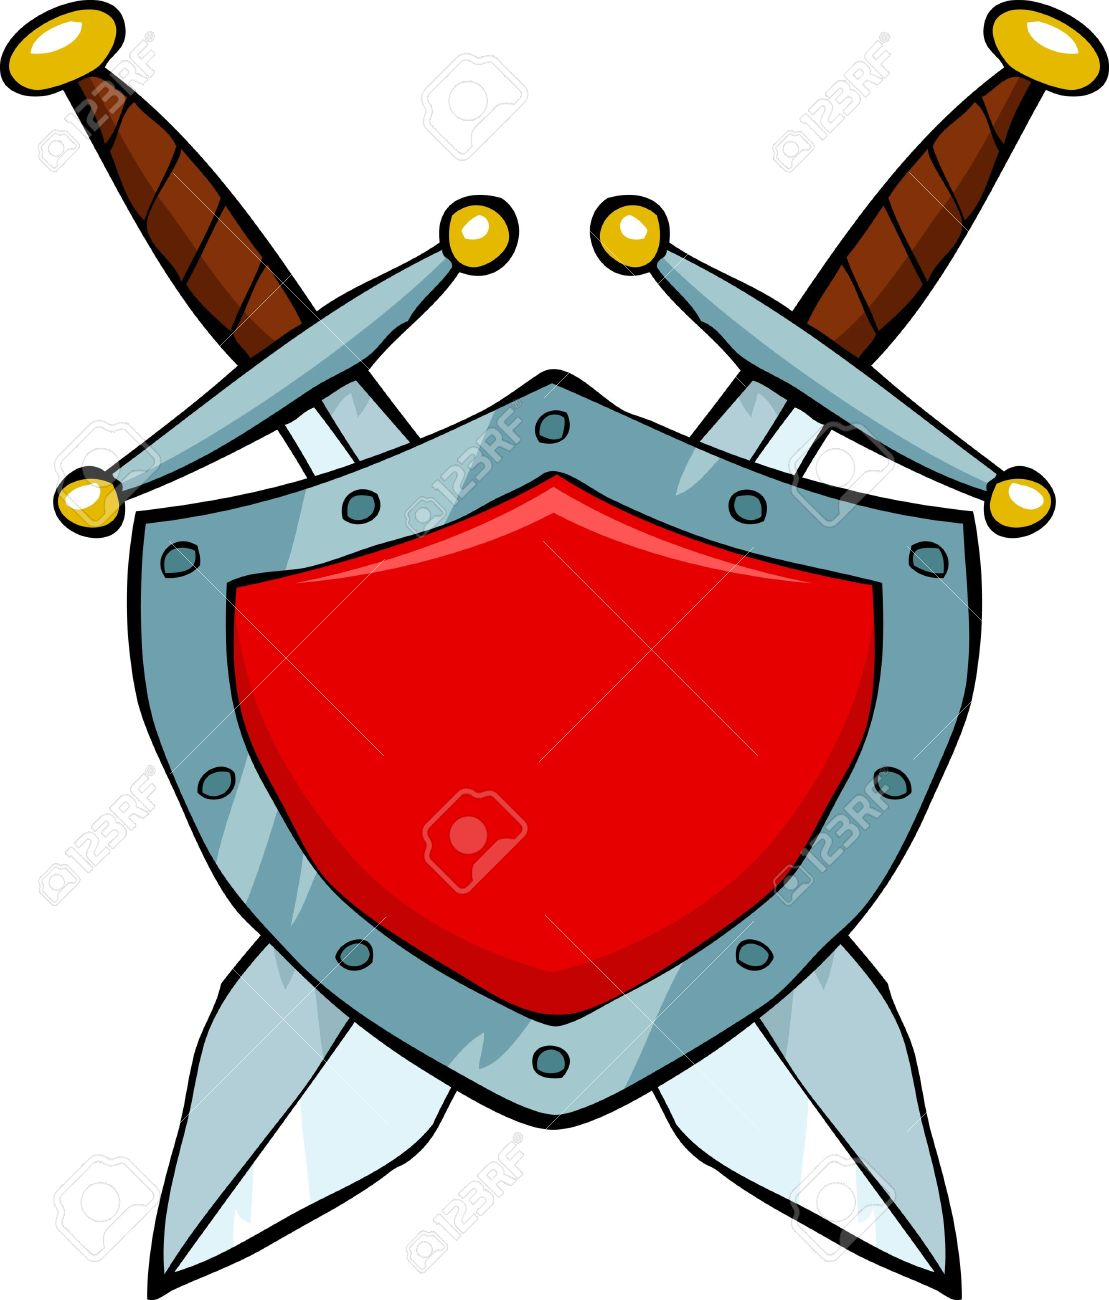 1109x1300 Sword Clipart Cartoon Free Collection Download And Share Sword